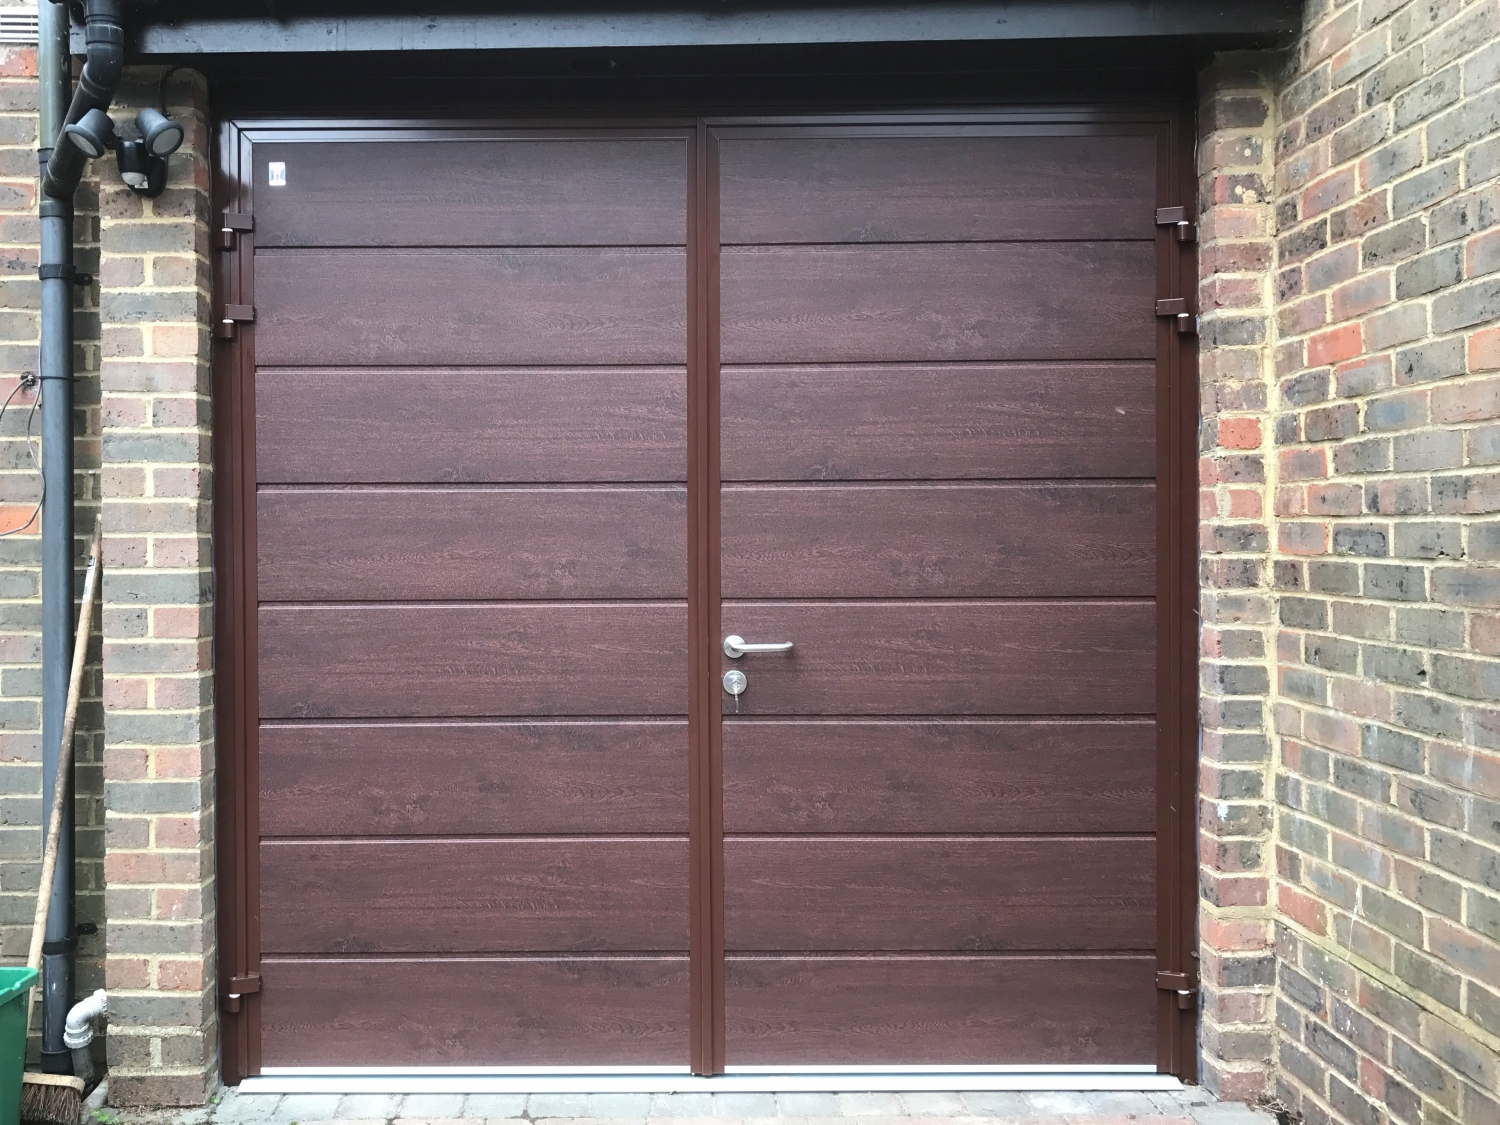 CarTeck GSW 40-L side-hinged doors in centre medium rib in Rosewood finish